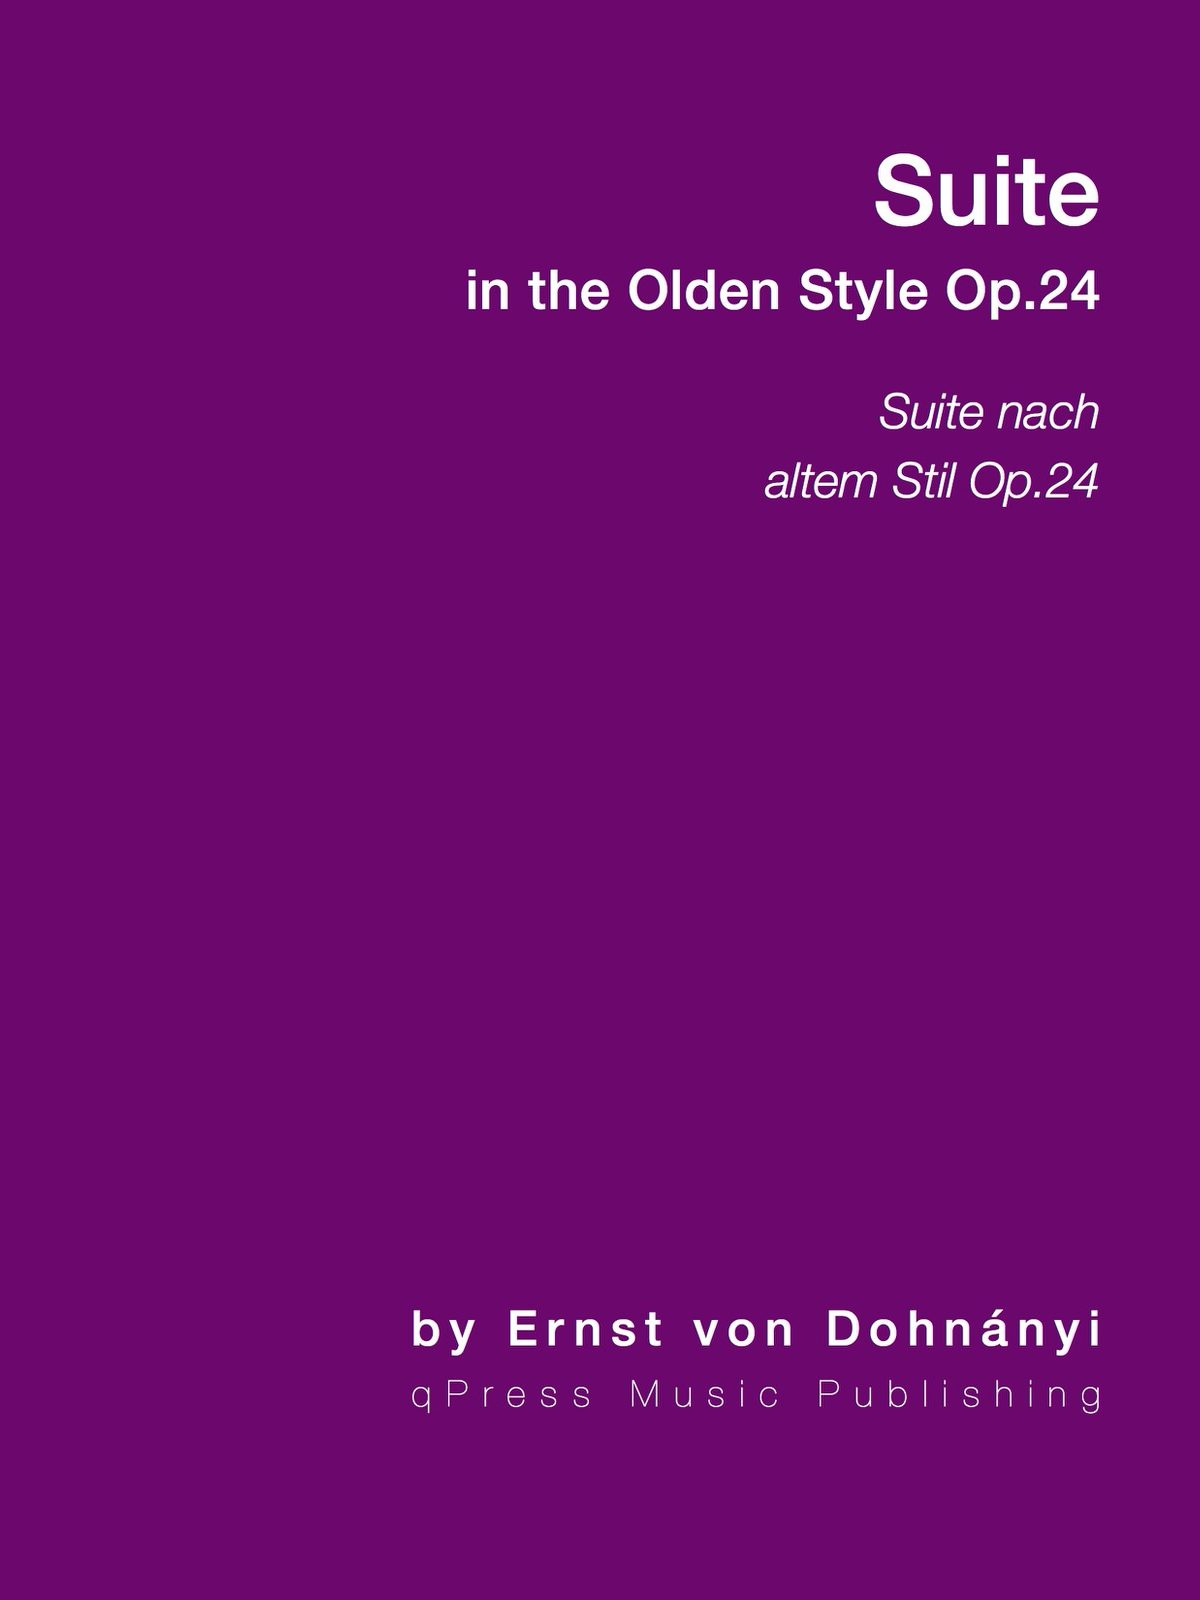 Dohnanyi, Suite in the Olden Style, Op.24-p01